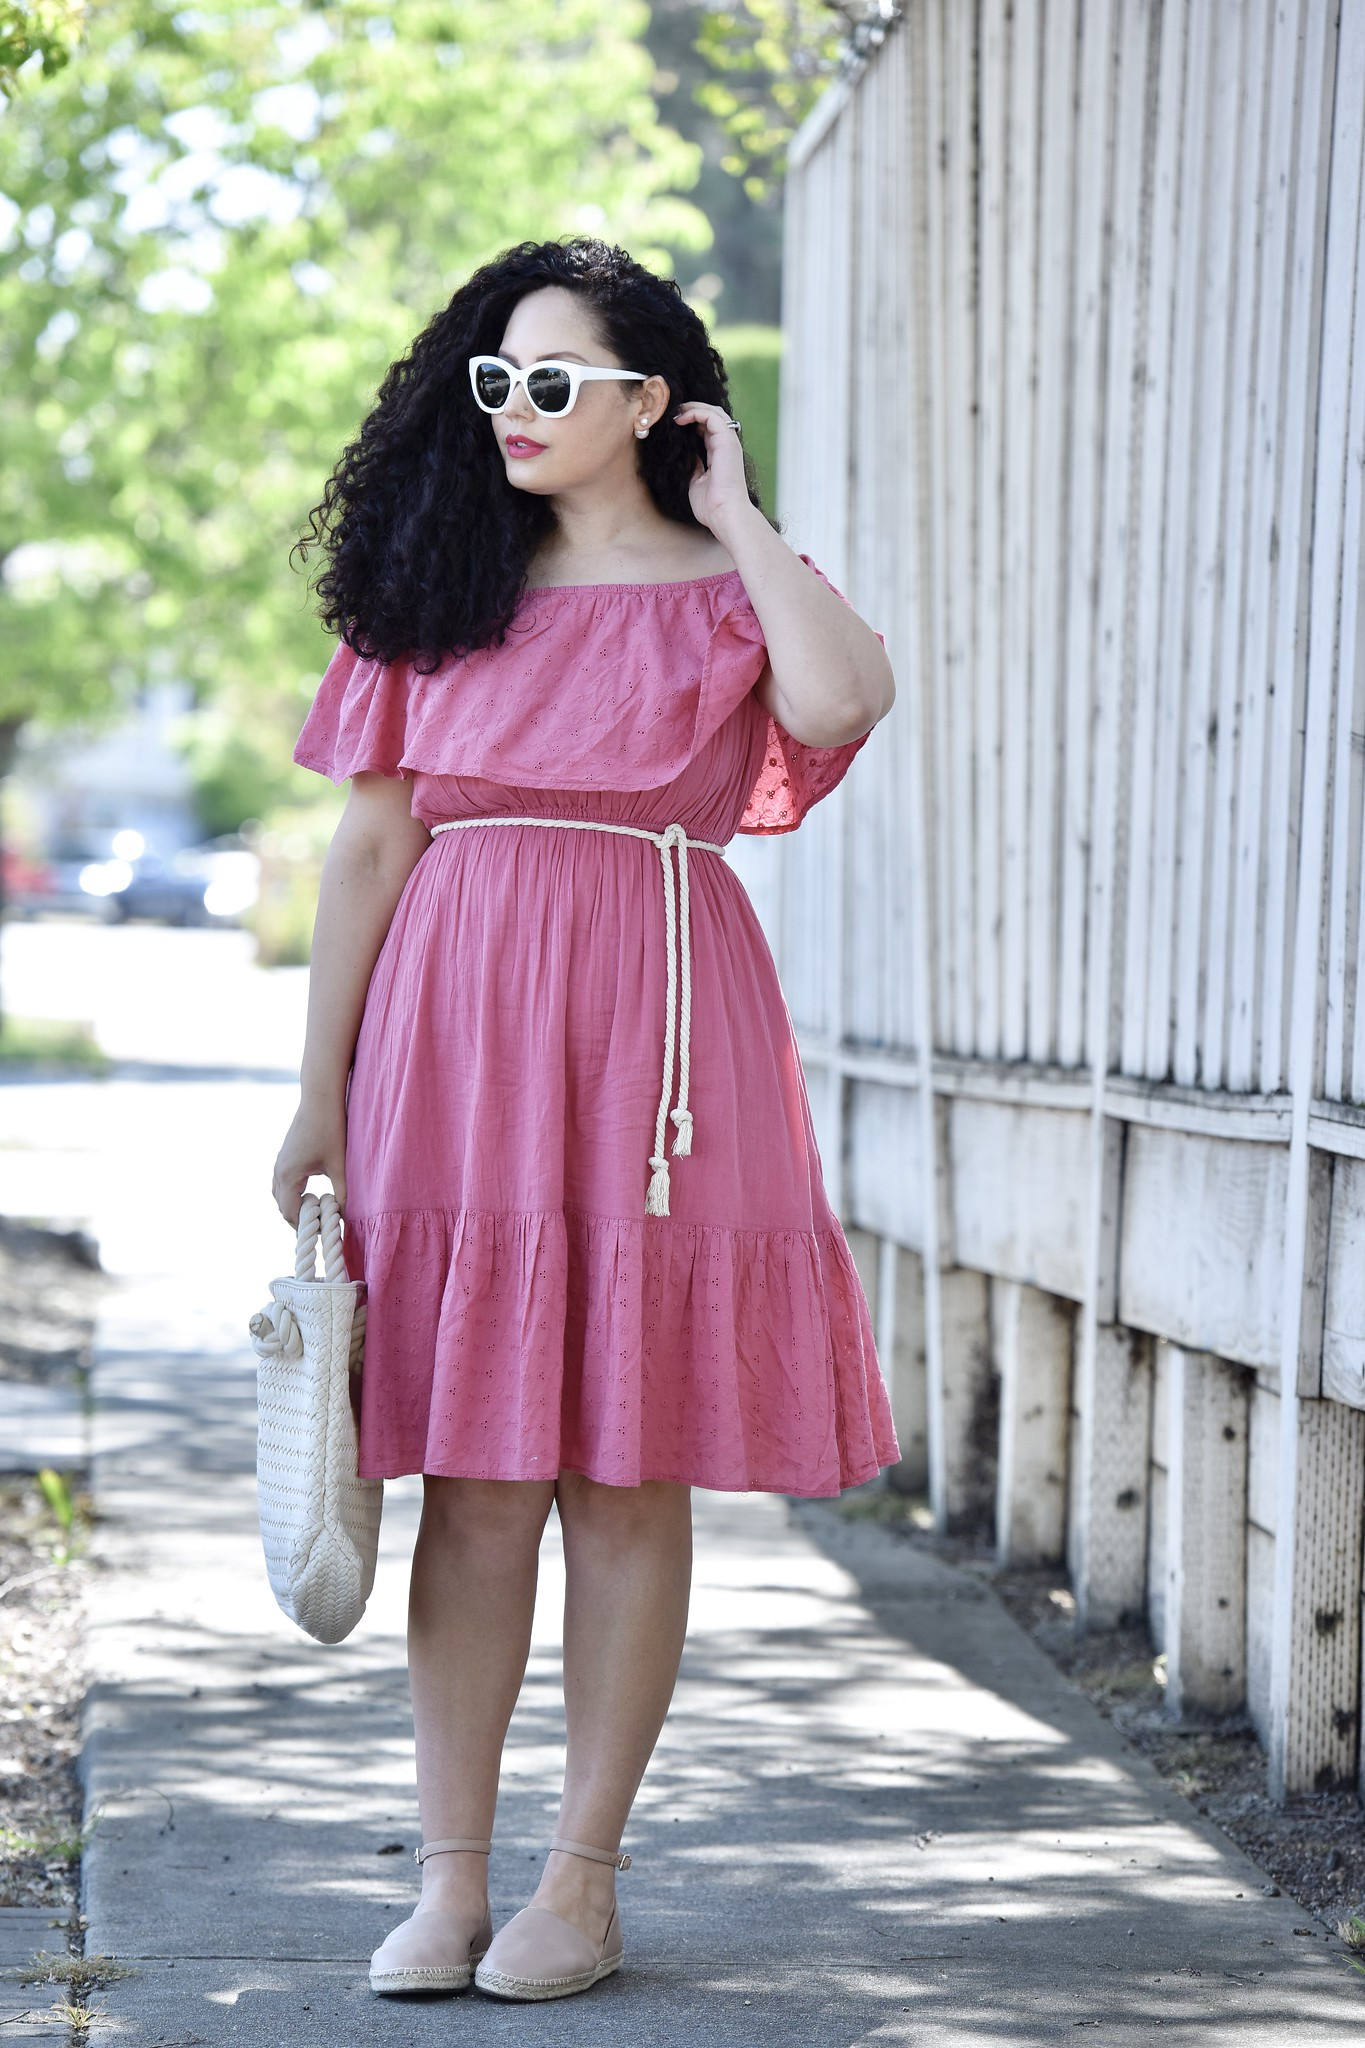 I Bought This Outfit It Looks Amazing On: This Budget-Friendly Dress Looks Amazing On Everyone